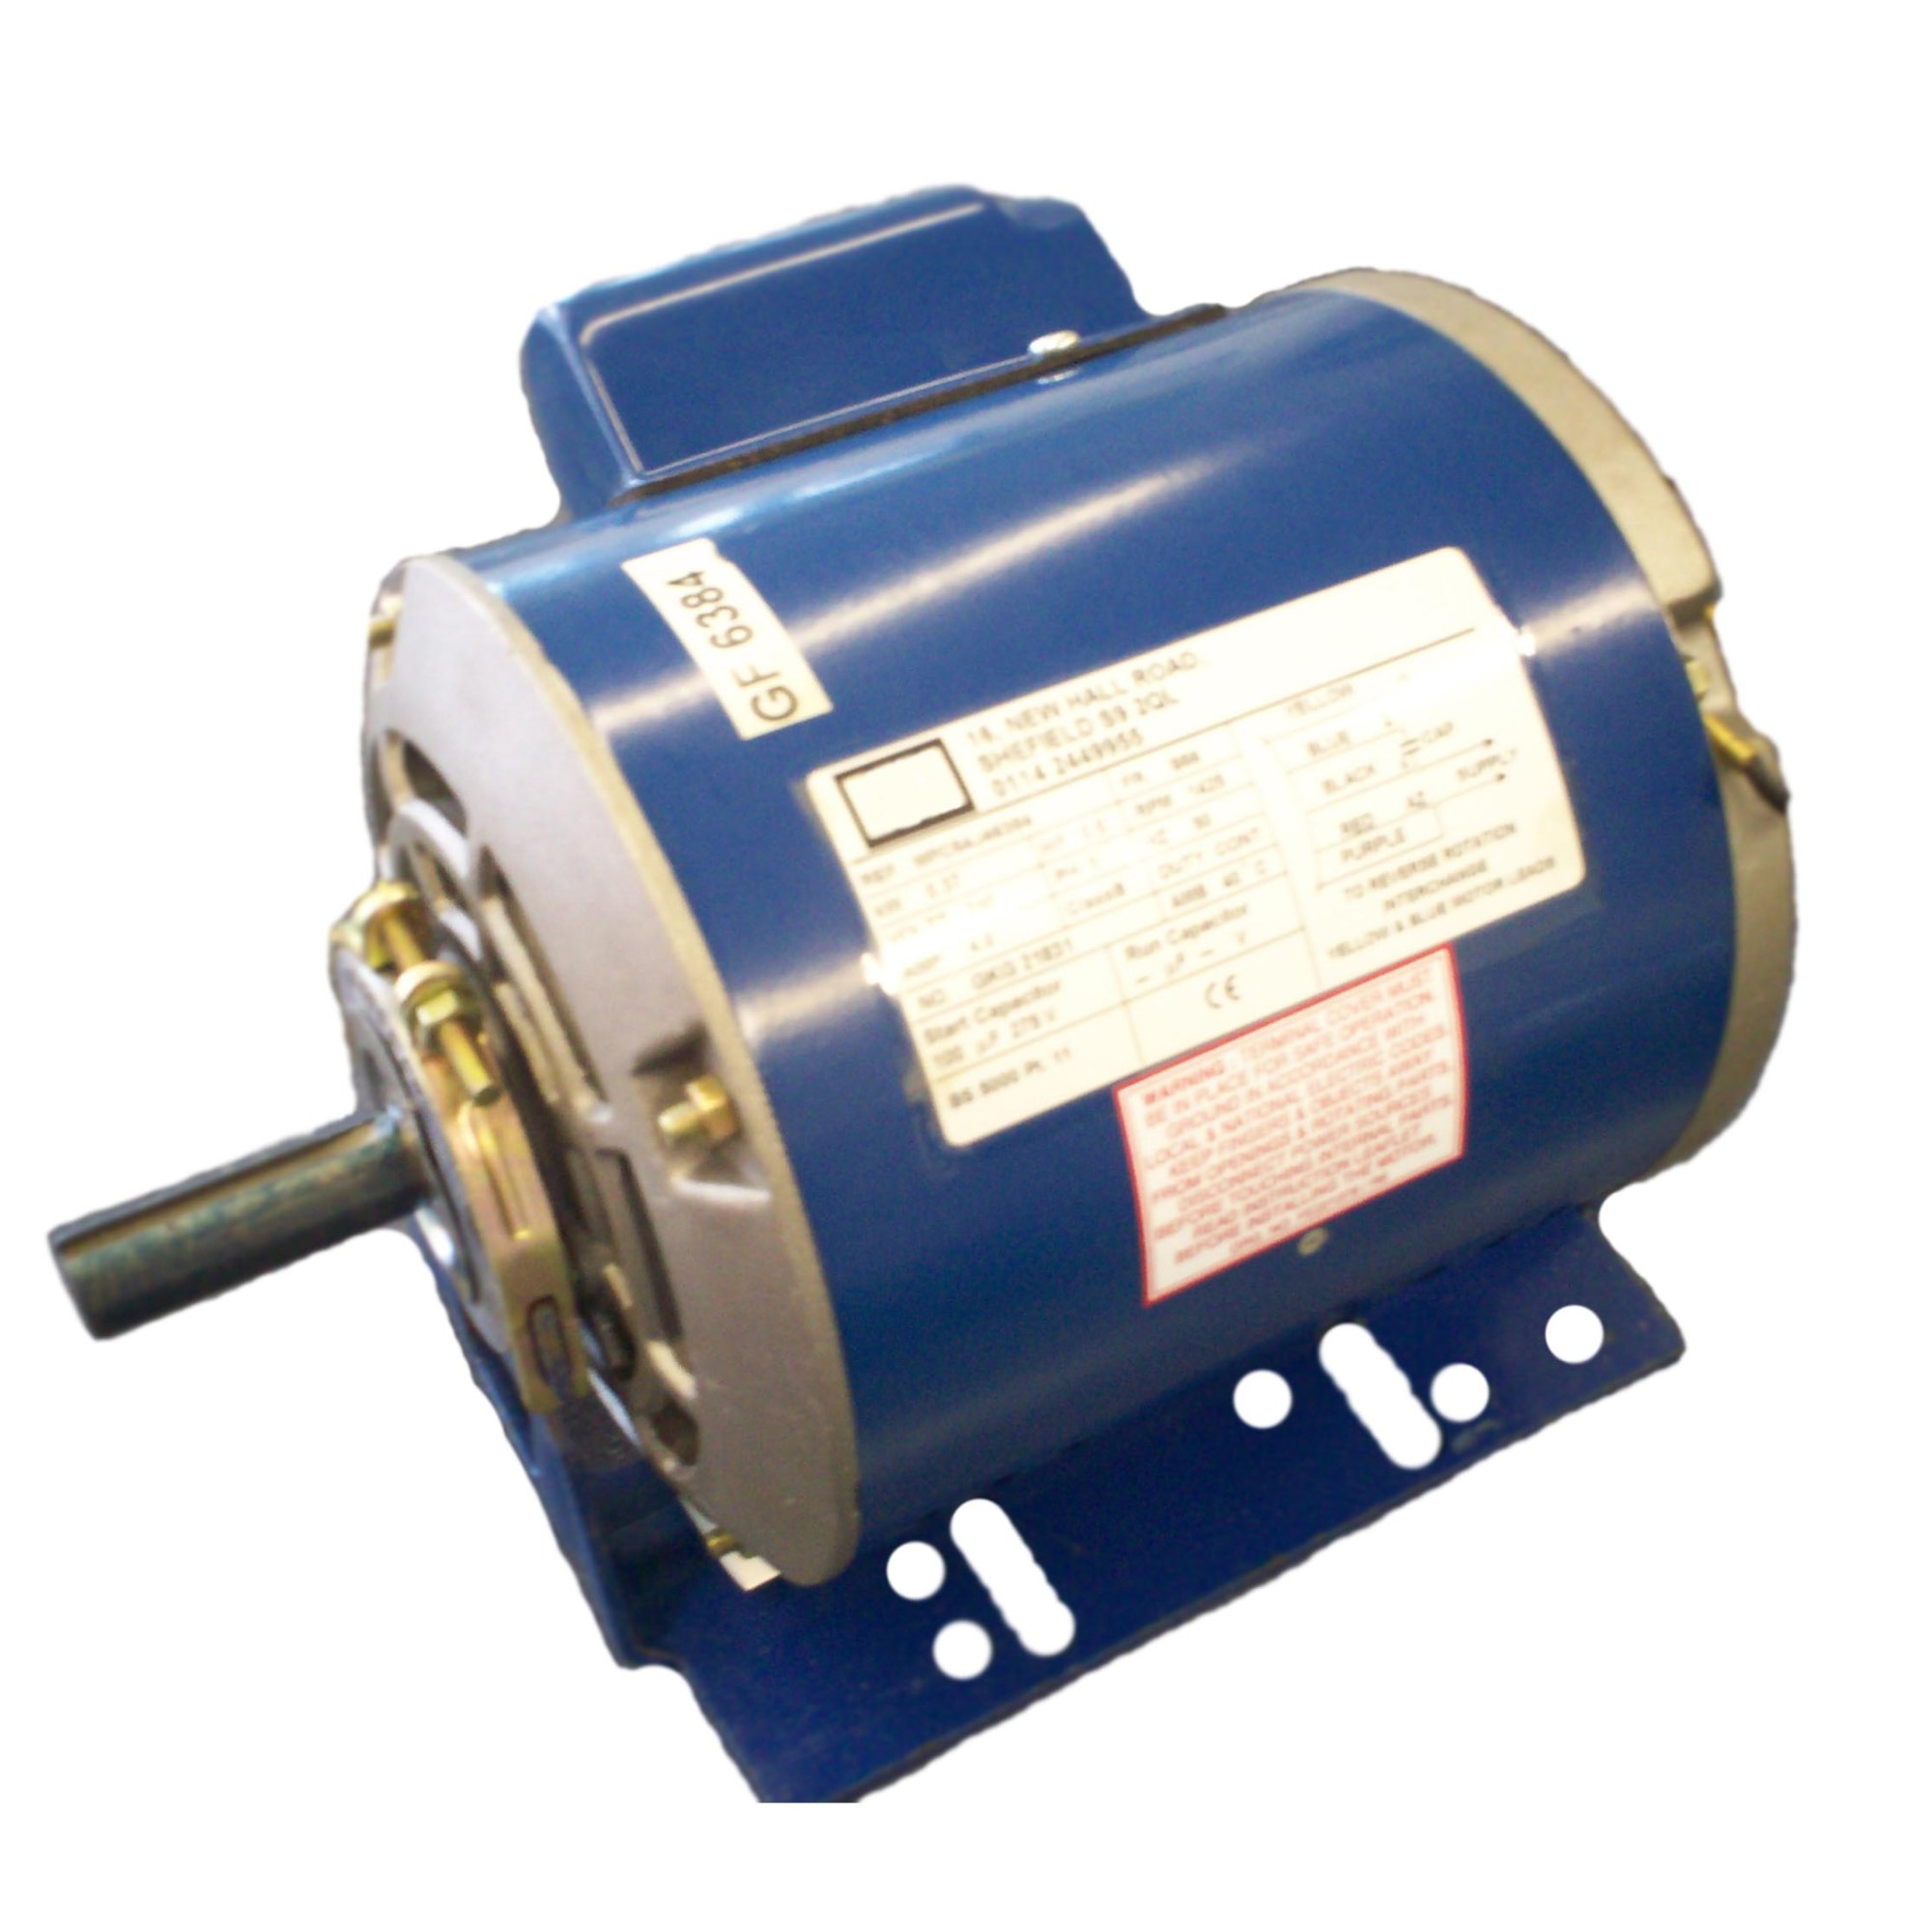 hight resolution of an motor 550 watt 4pole 1 phase res base 836 p jpg